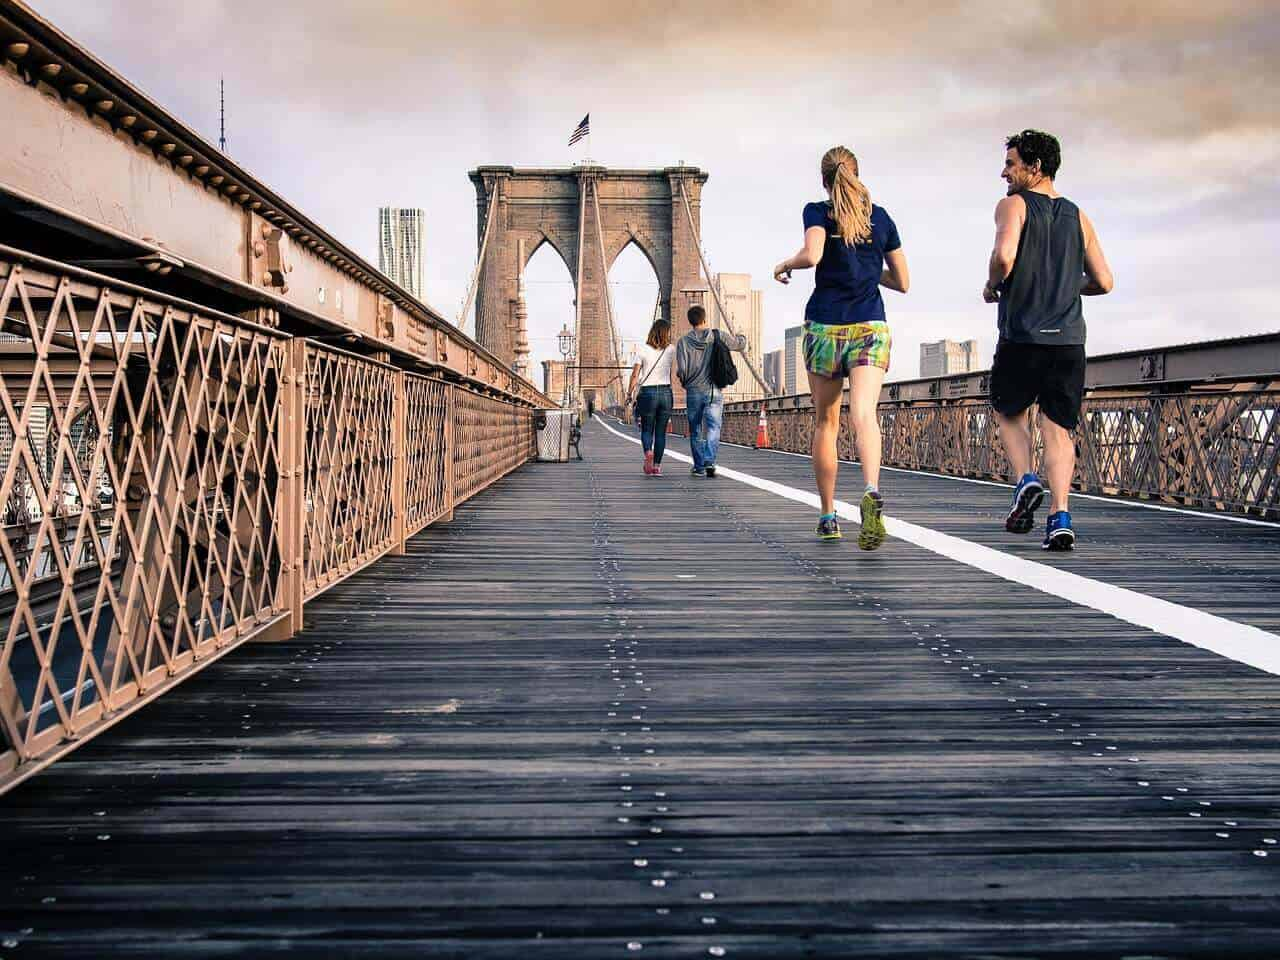 Your running partner will be there to encourage you to achieve your goals